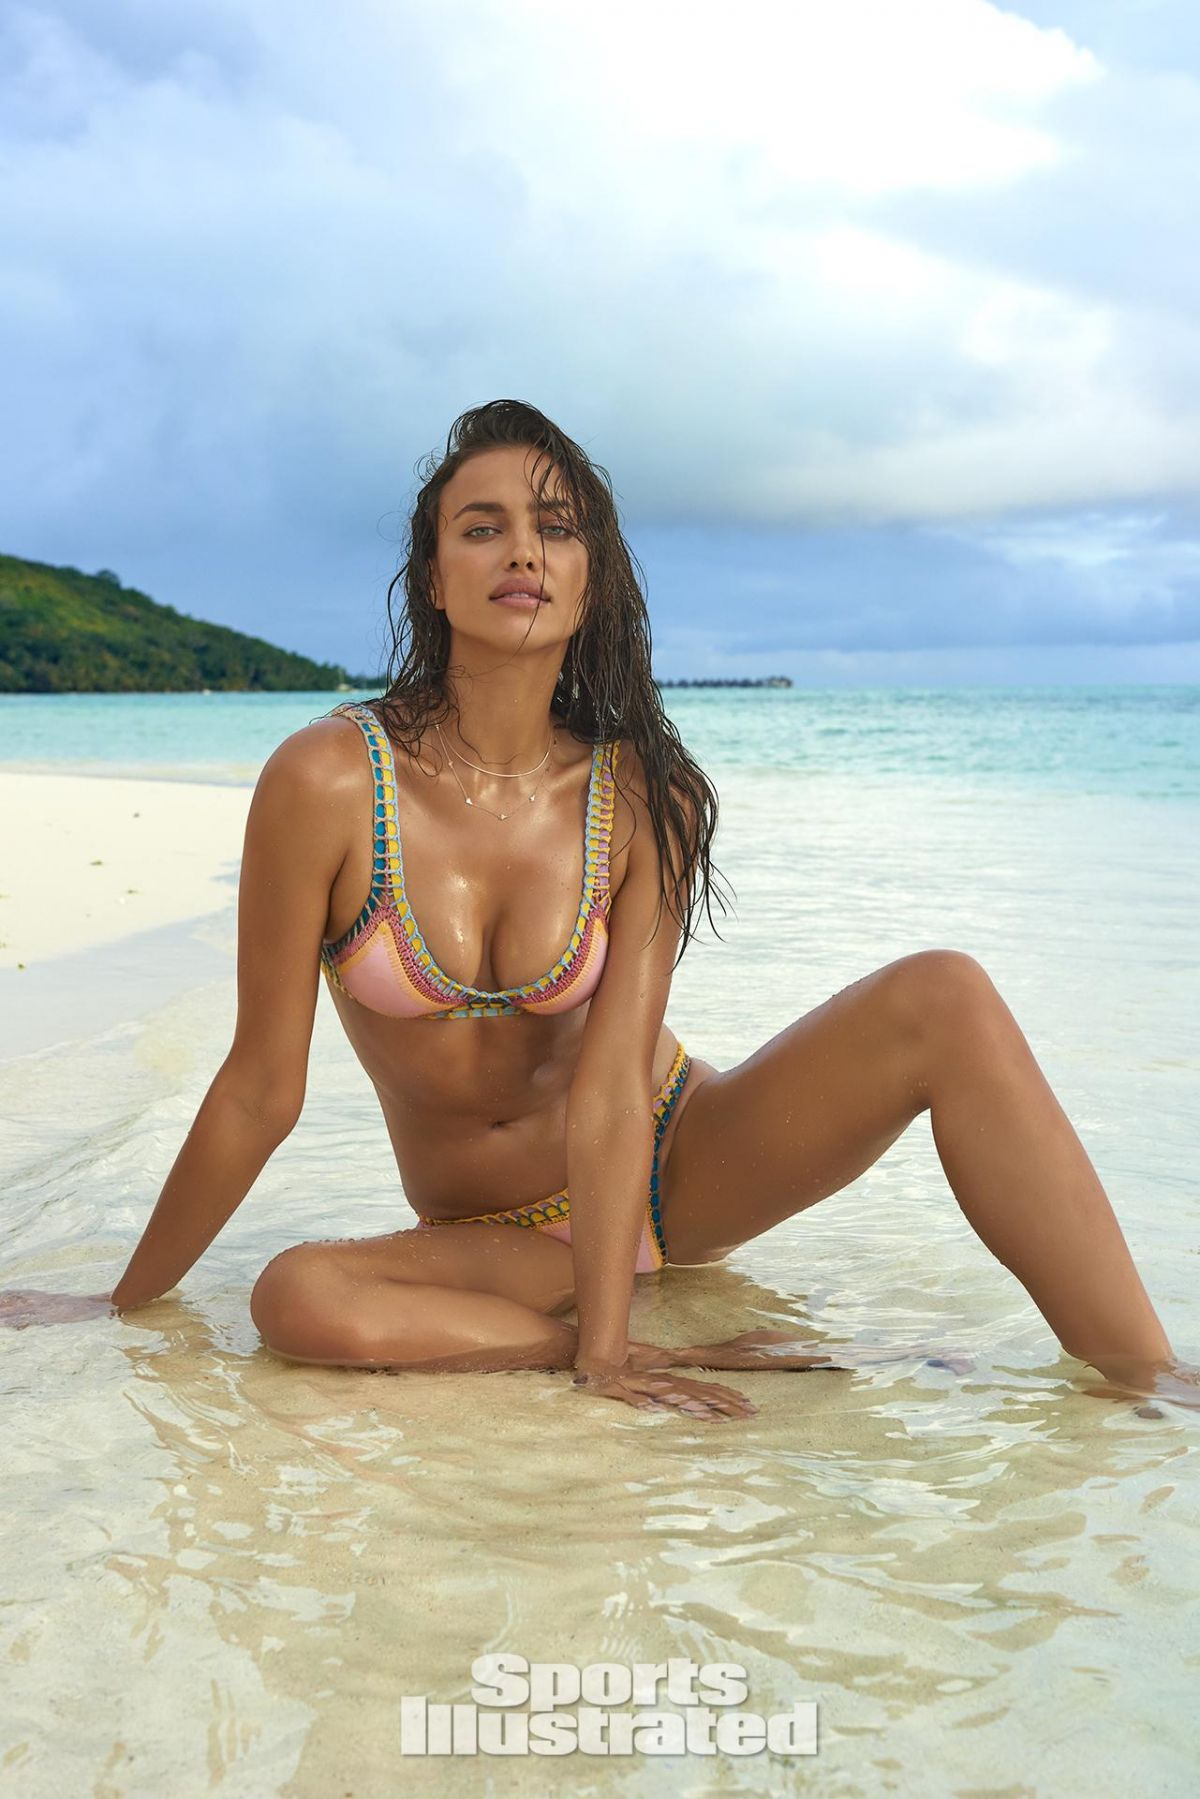 IRINA SHAYK in Sports Illustrated Swimsuit Issue 2016 HawtCelebs HawtCelebs